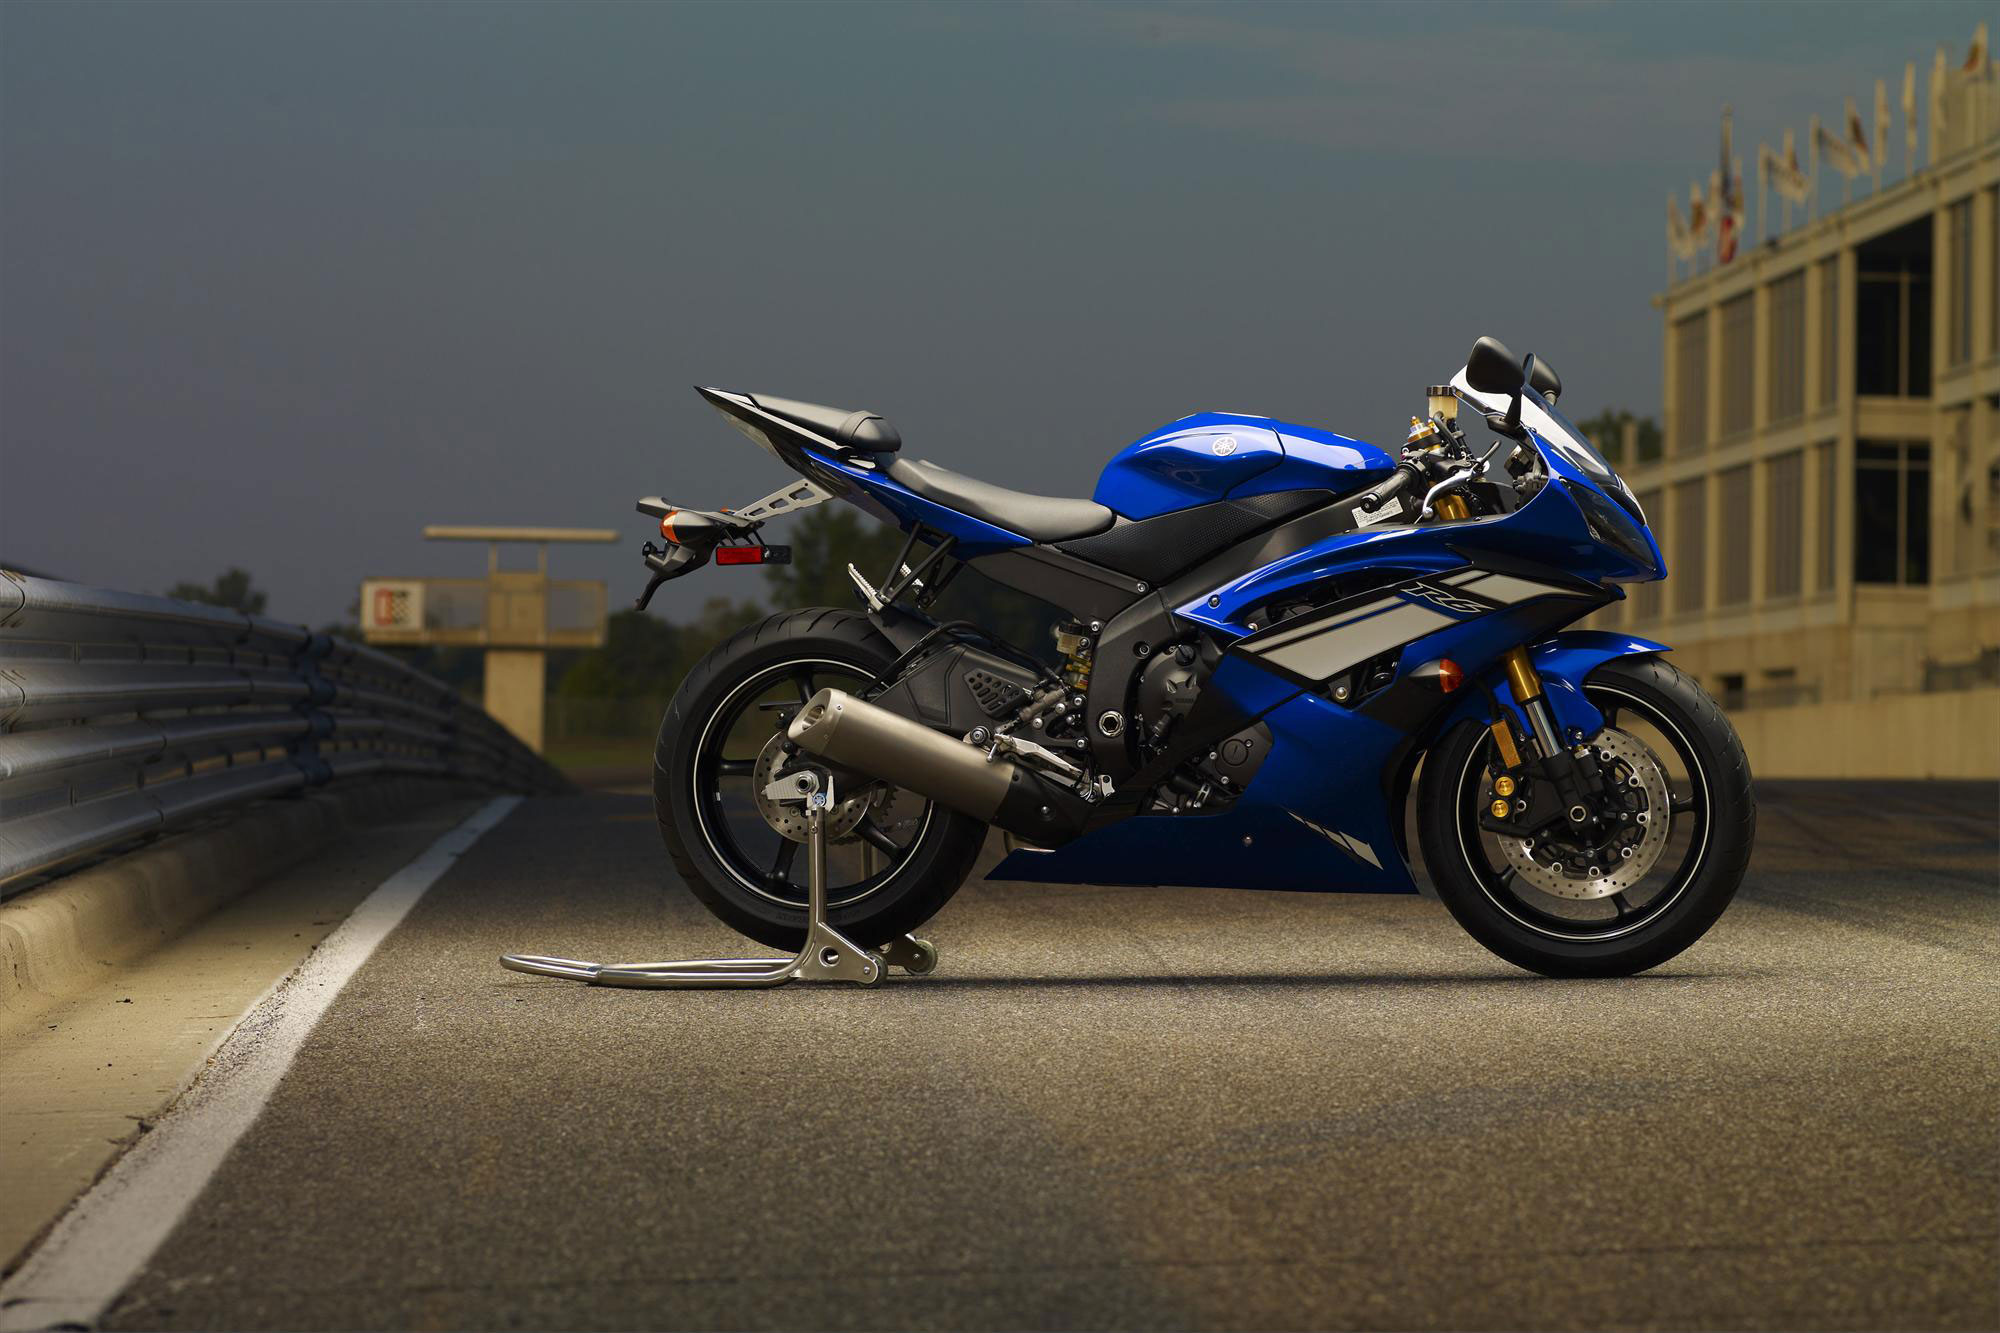 Yamaha Yzf R6 Backgrounds, Compatible - PC, Mobile, Gadgets| 2000x1333 px